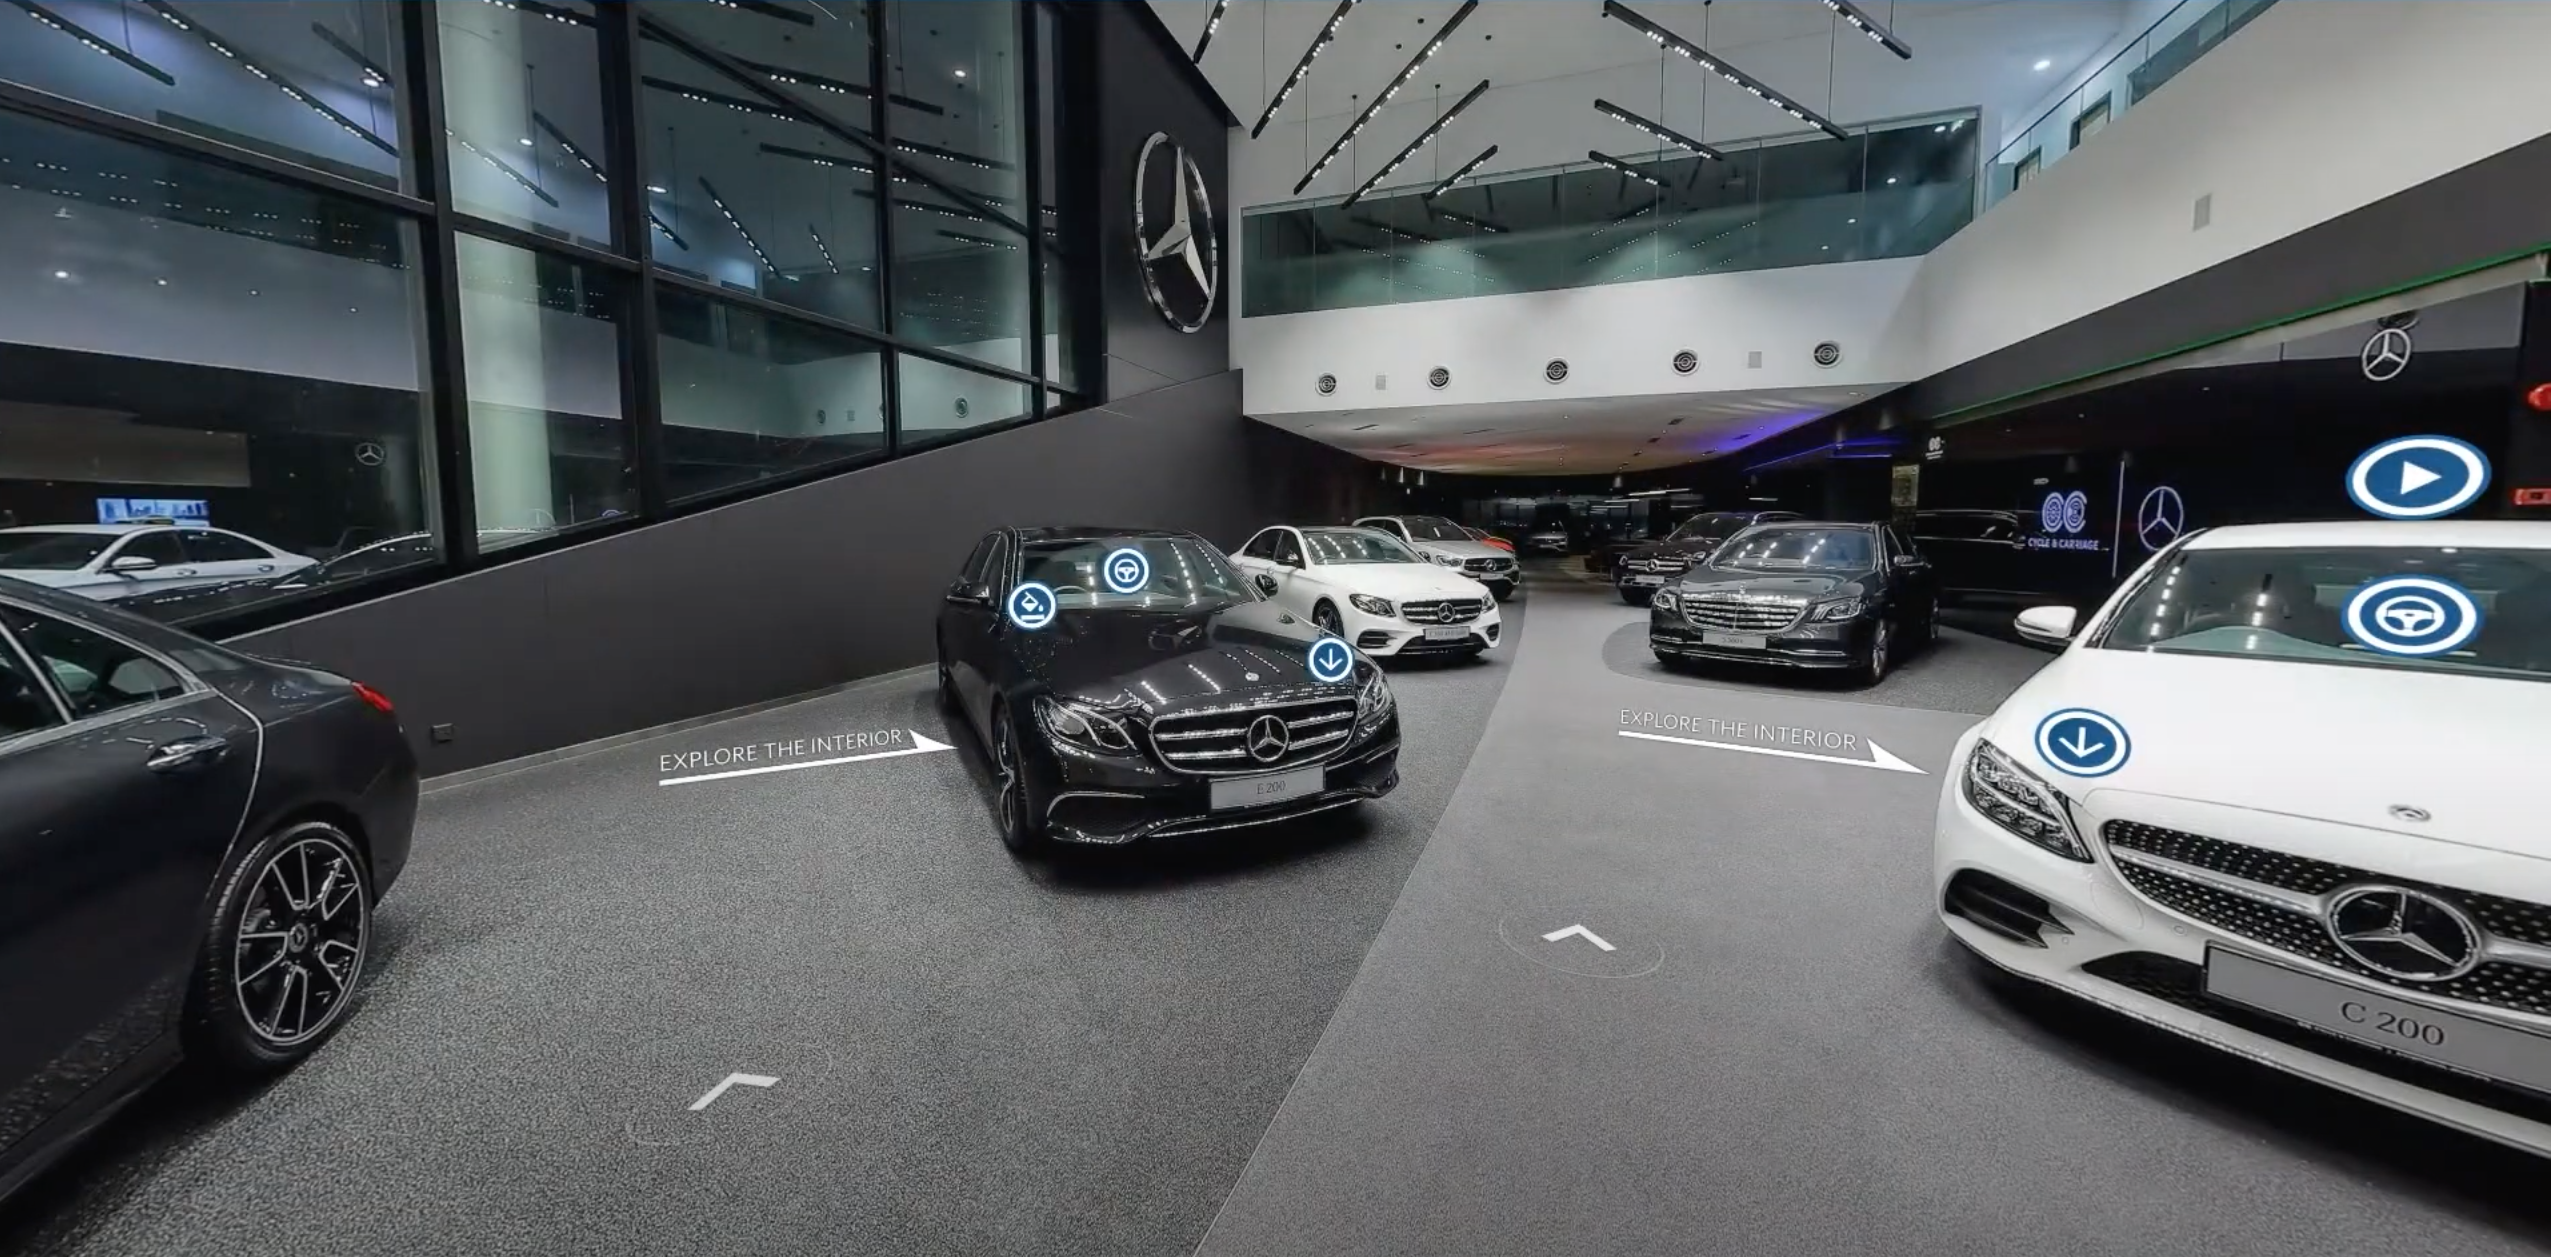 Cycle & Carriage Present Malaysia's First Mercedes Virtual Showroom